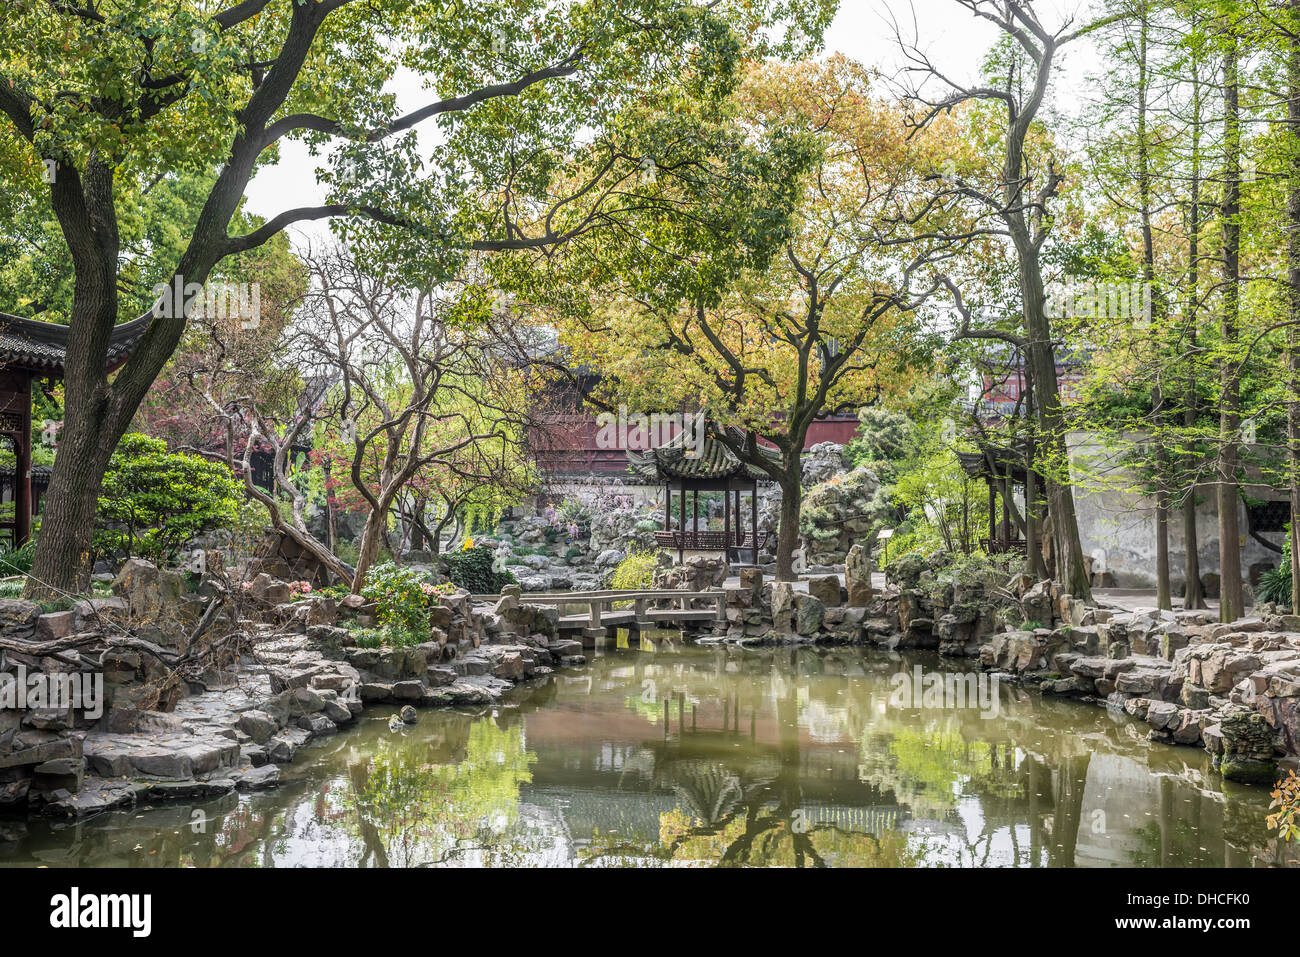 detail of the historic Yuyuan Garden created in the year 1559 by Pan Yunduan in Shanghai China - Stock Image